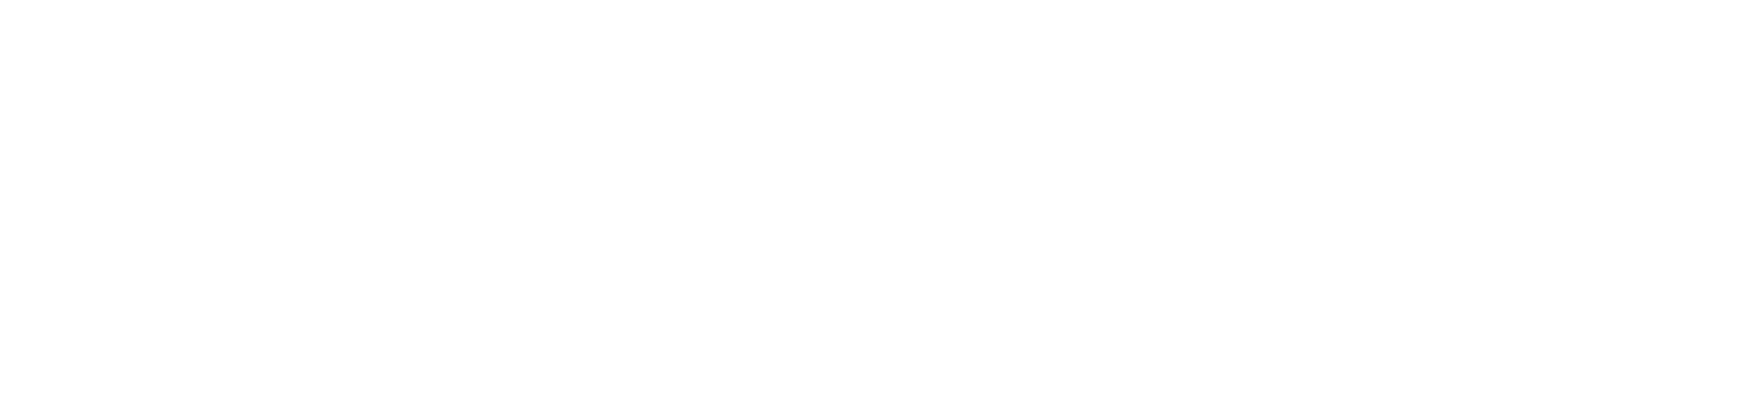 Battle Page Insurance Franklin TN Logo